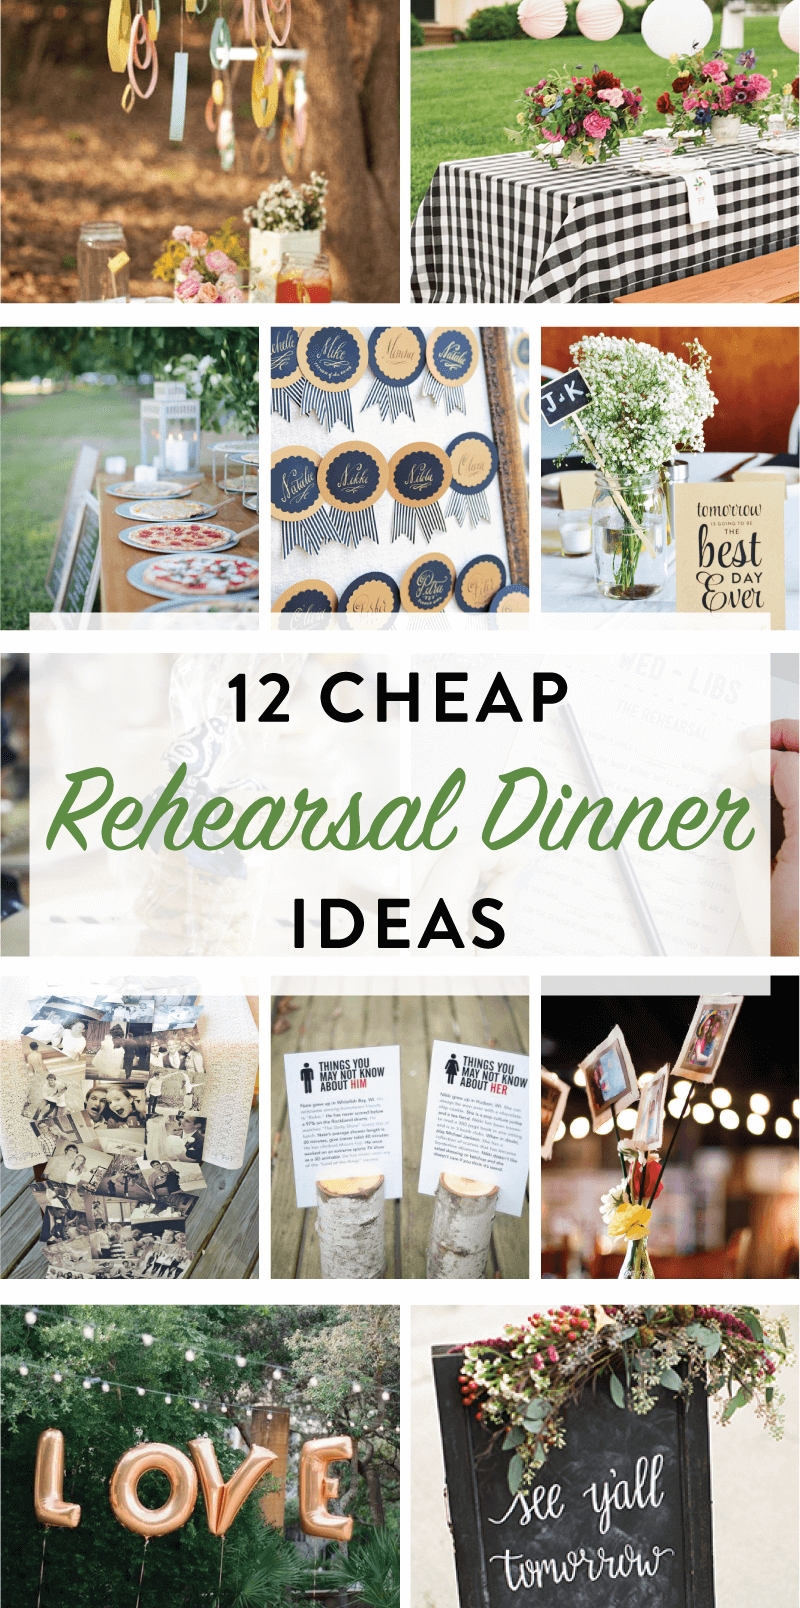 10 Unique Rehearsal Dinner Ideas On A Budget 12 cheap rehearsal dinner ideas for the modern bride on love the day 2